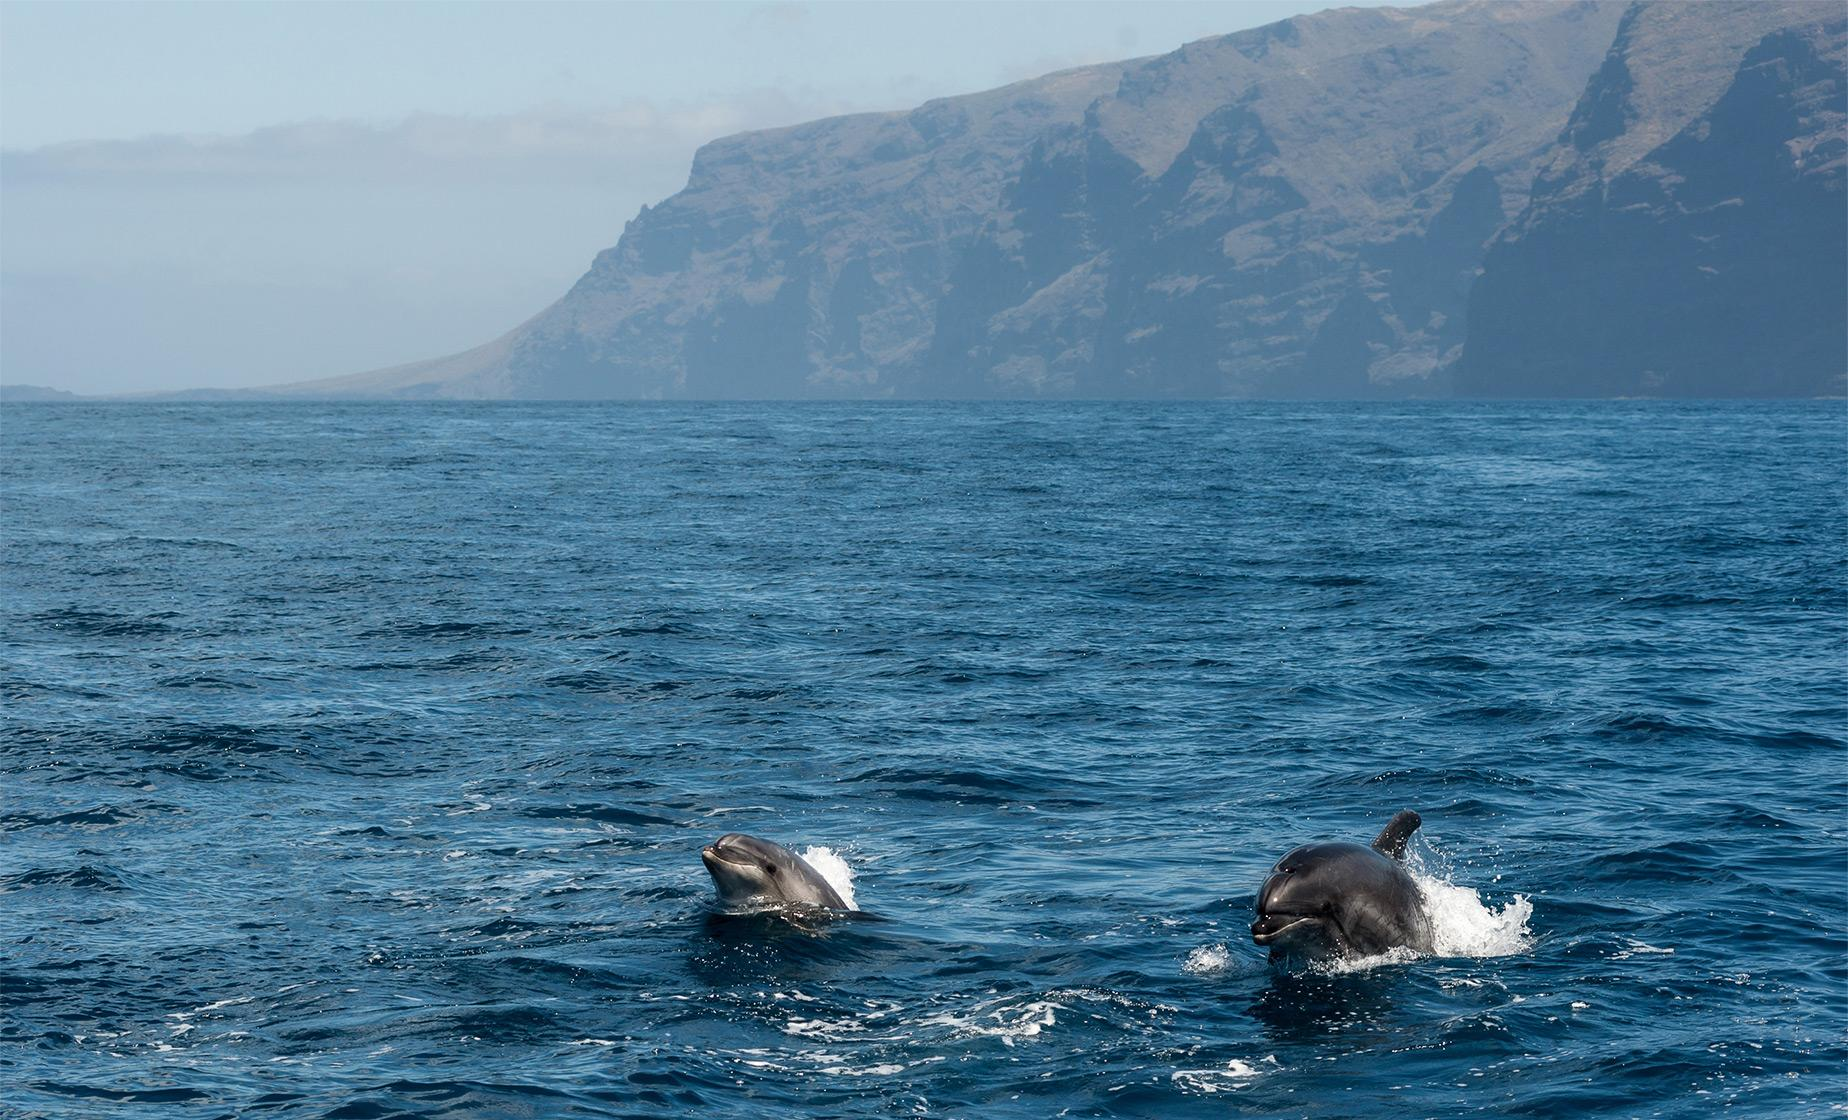 Madeira Dolphins and Whales by Catamaran